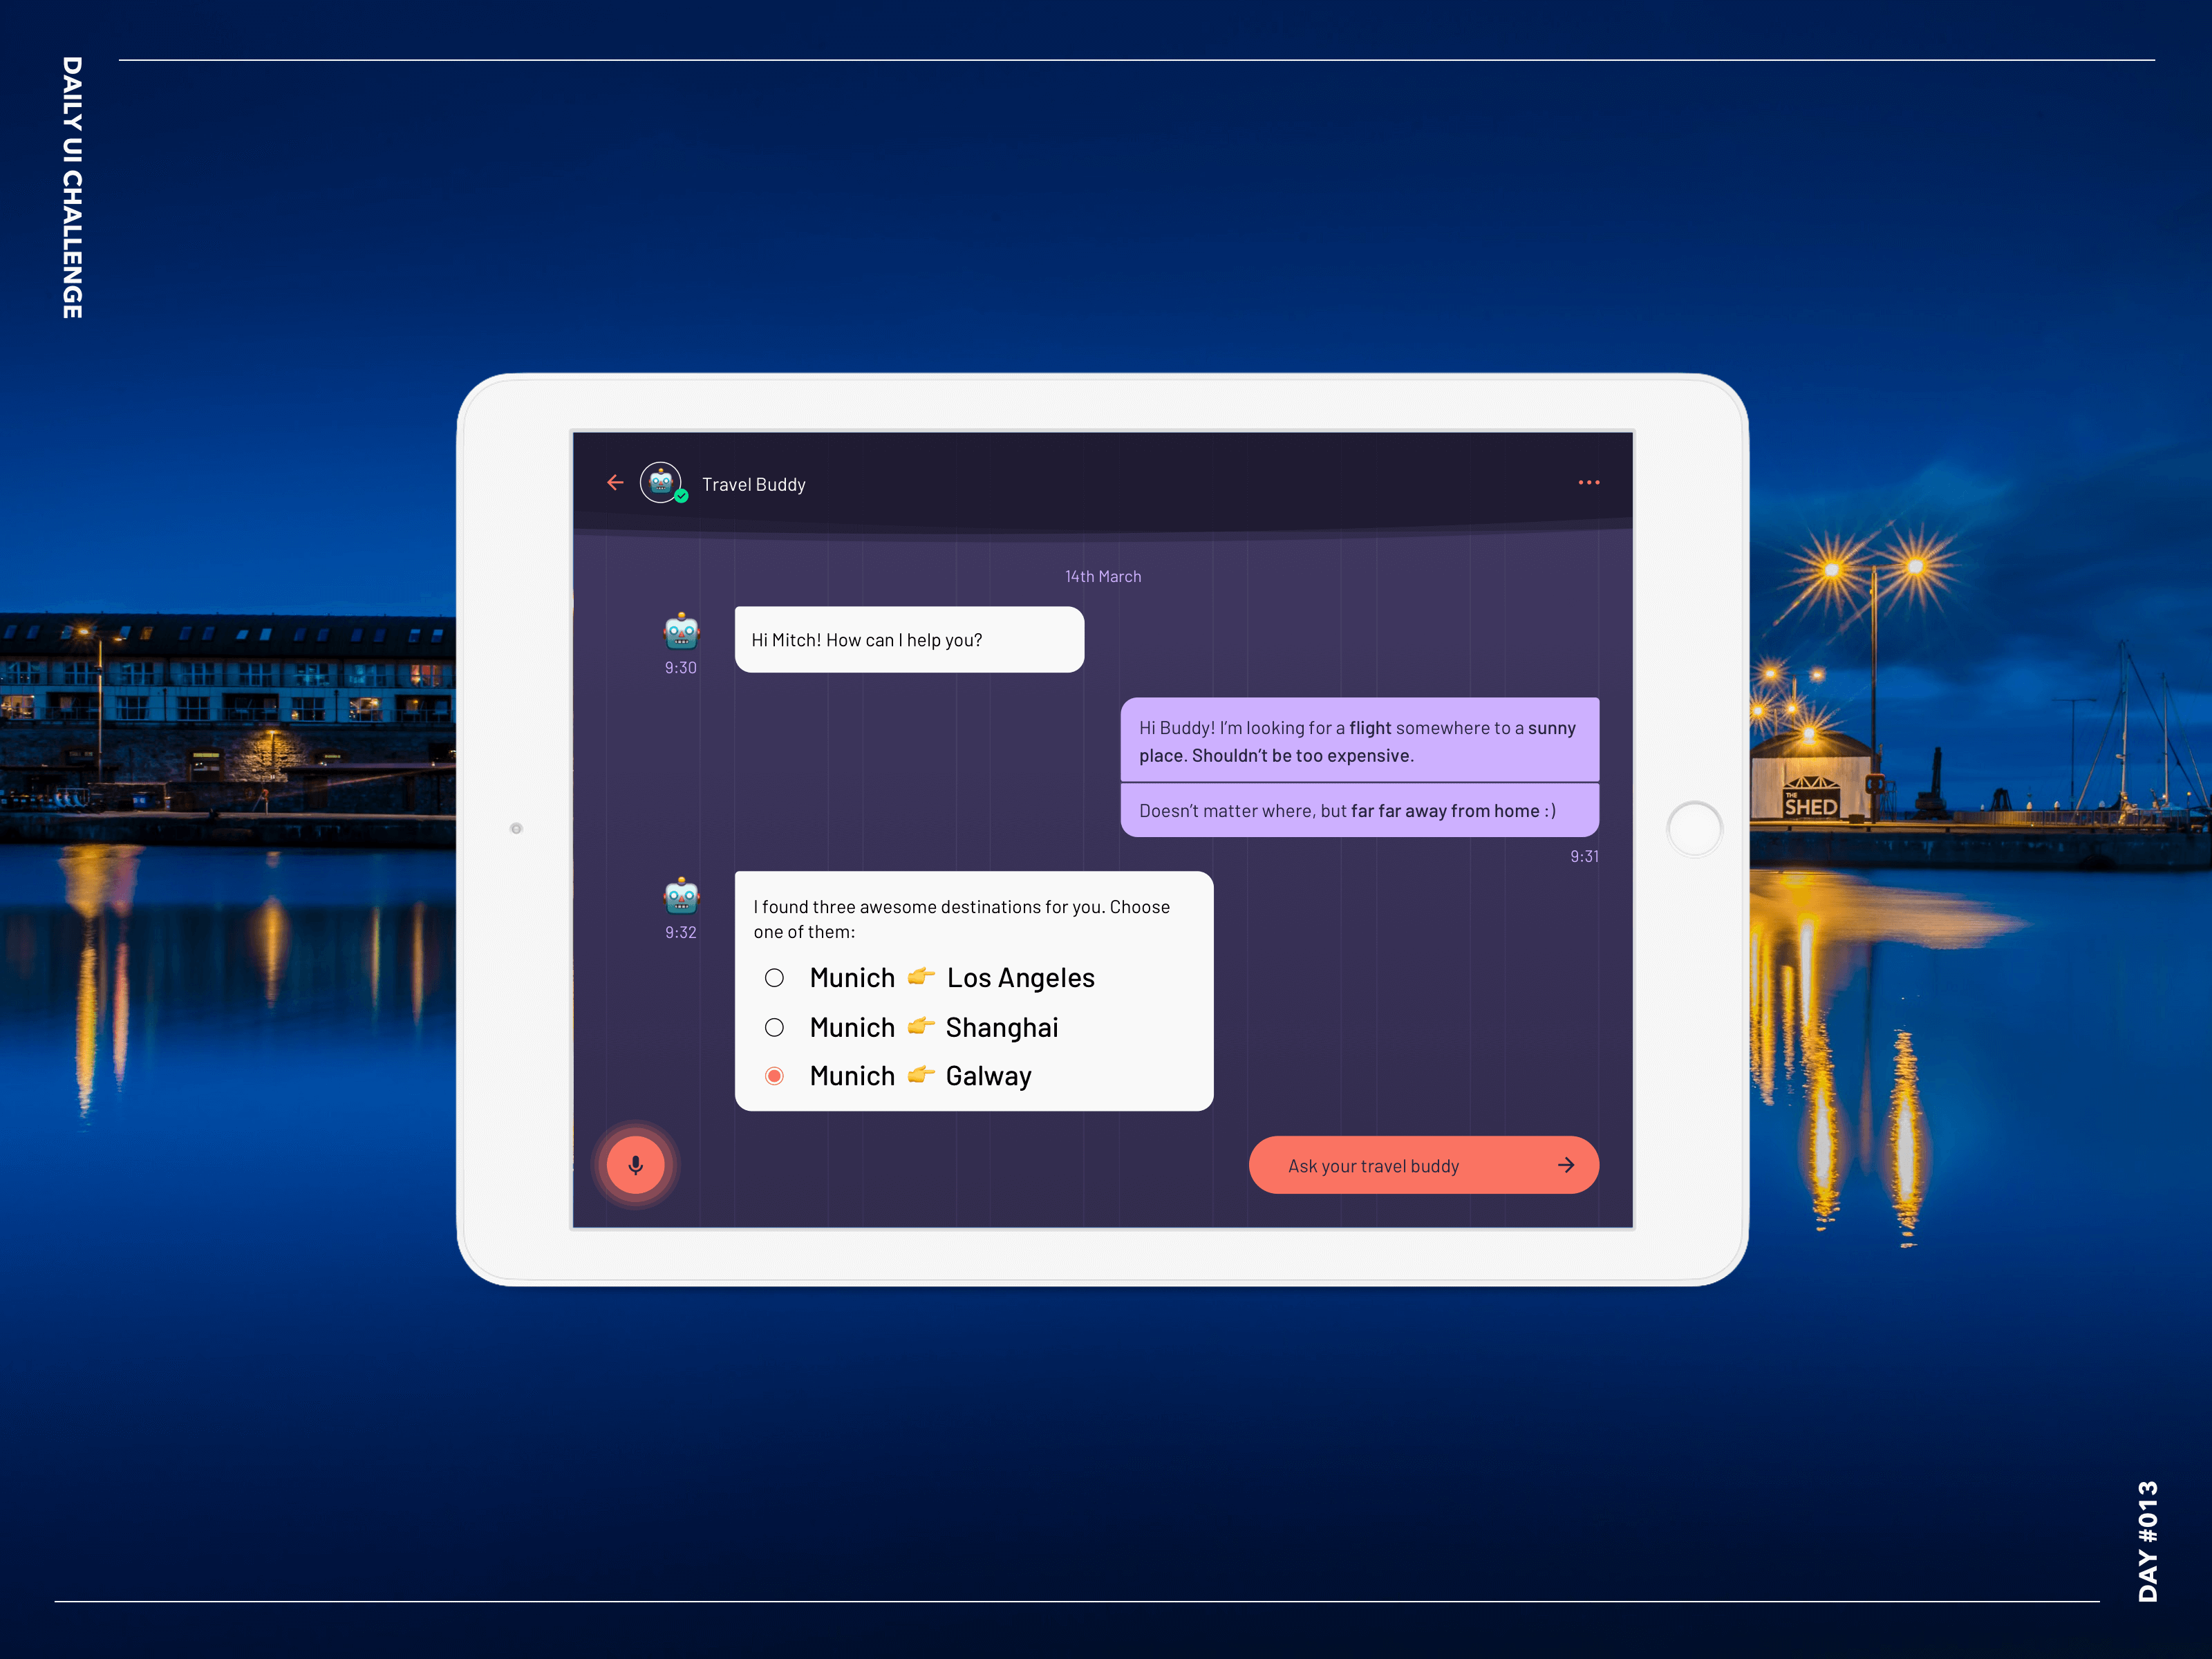 013-DUIC-Direct-Messaging-Dribbble-1